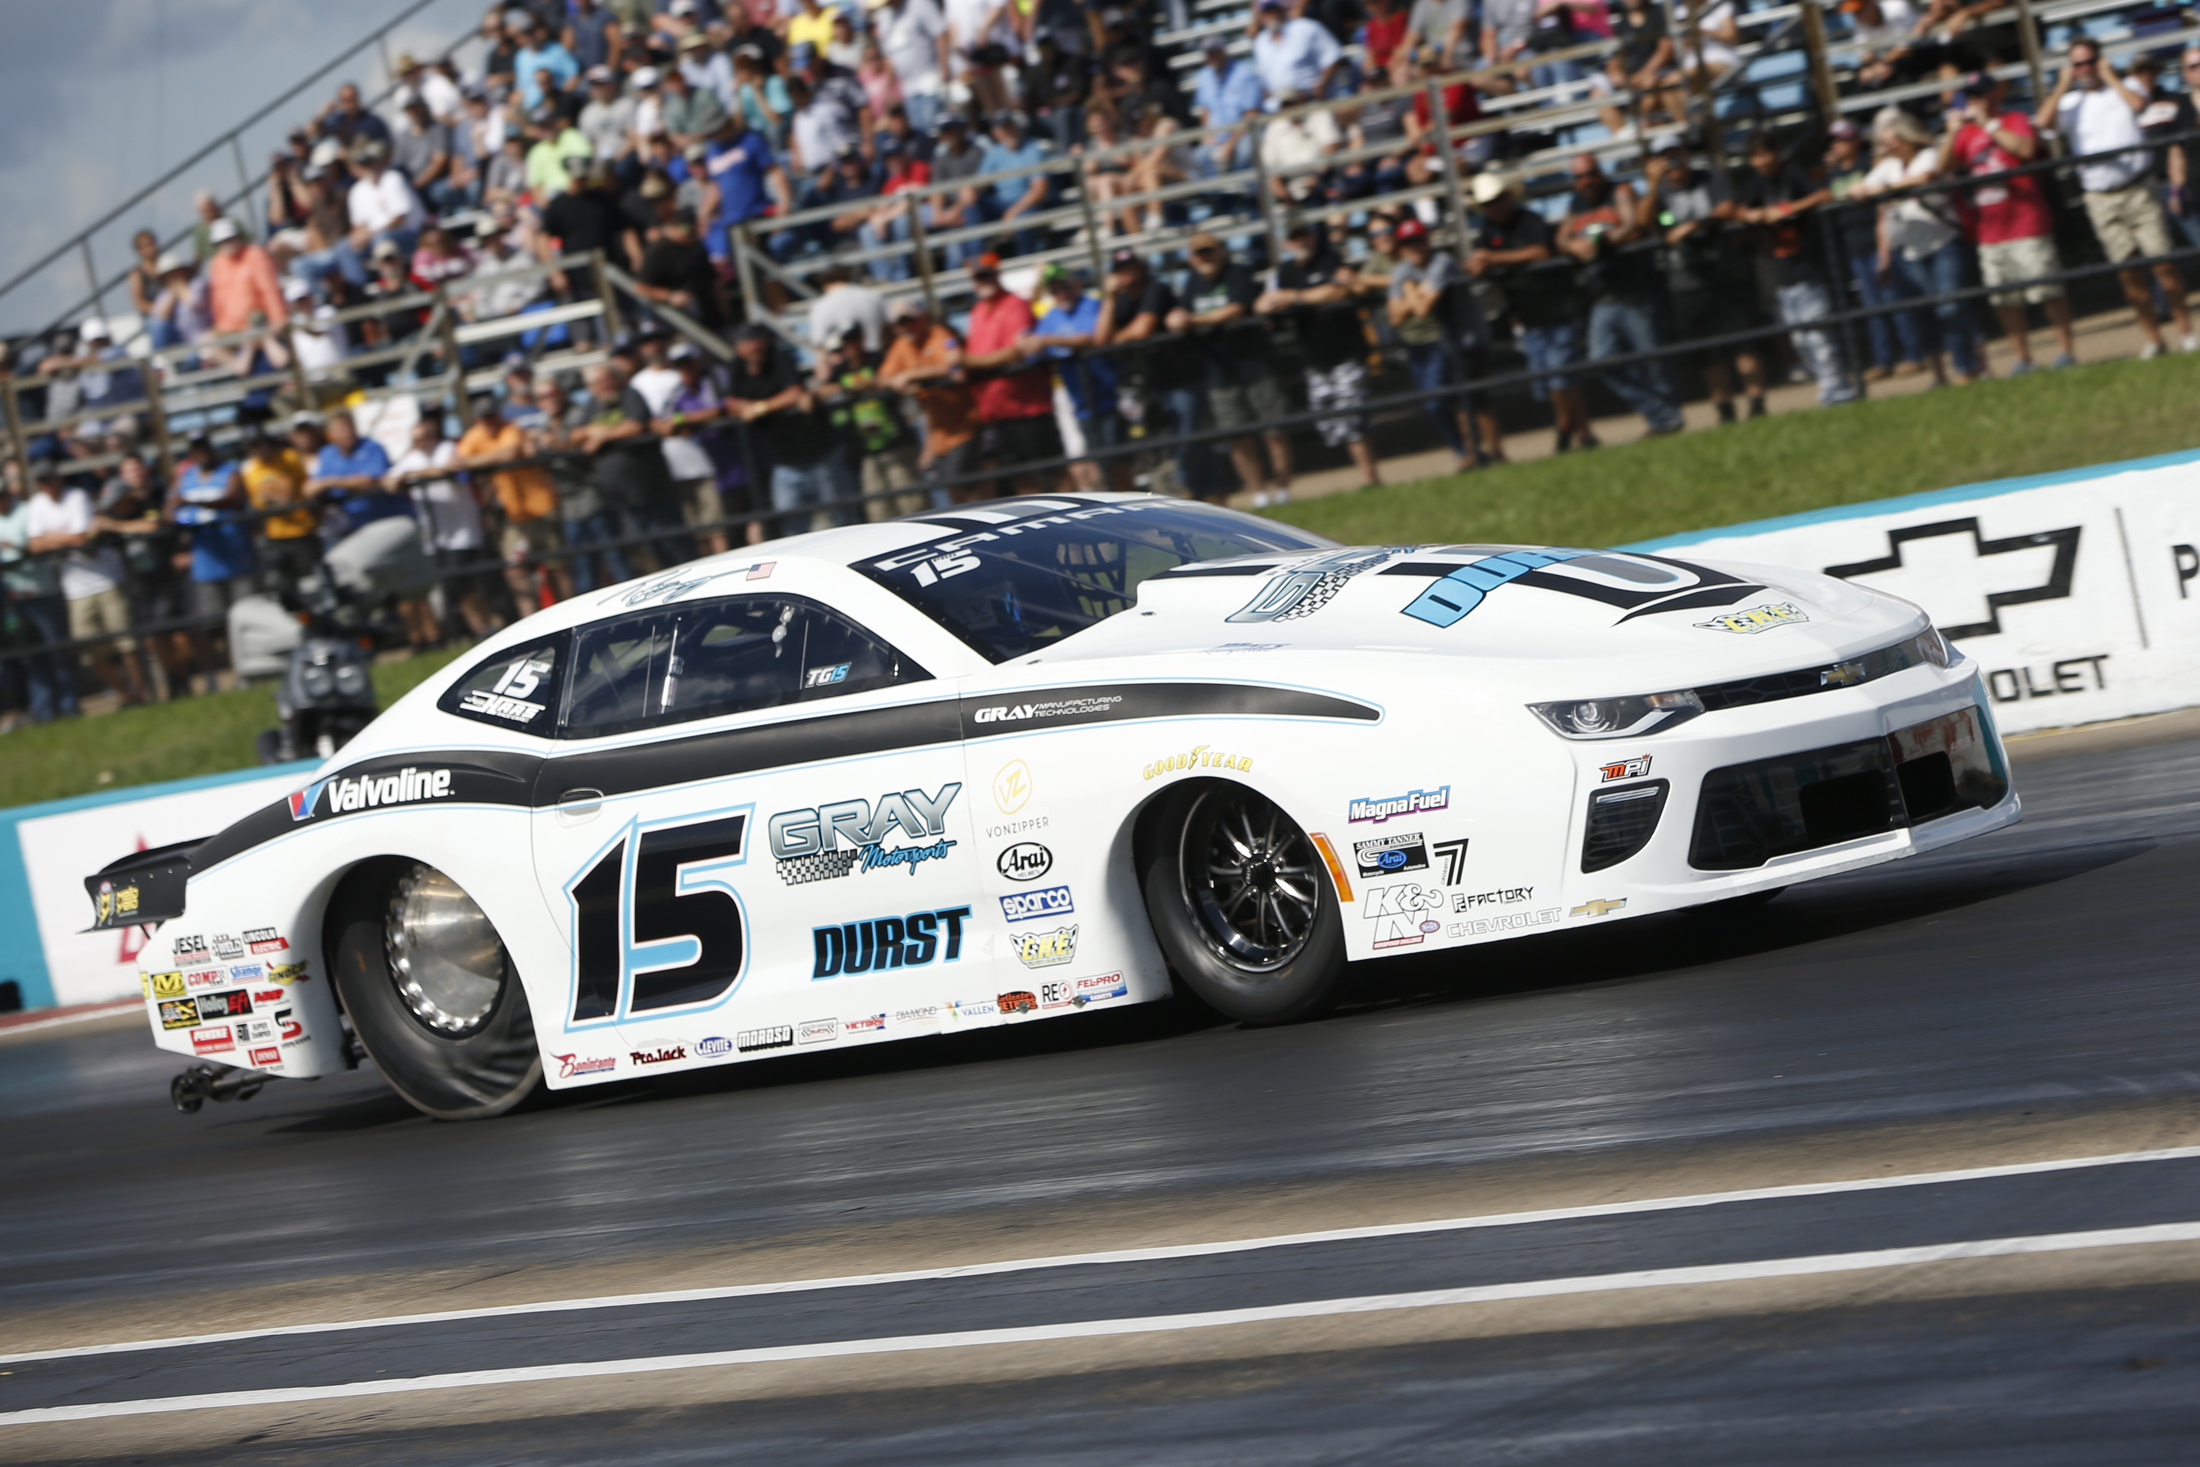 Former Gray Motorsports Pro Stock driver Tanner Gray racing on Sunday at the AAA Texas NHRA FallNationals